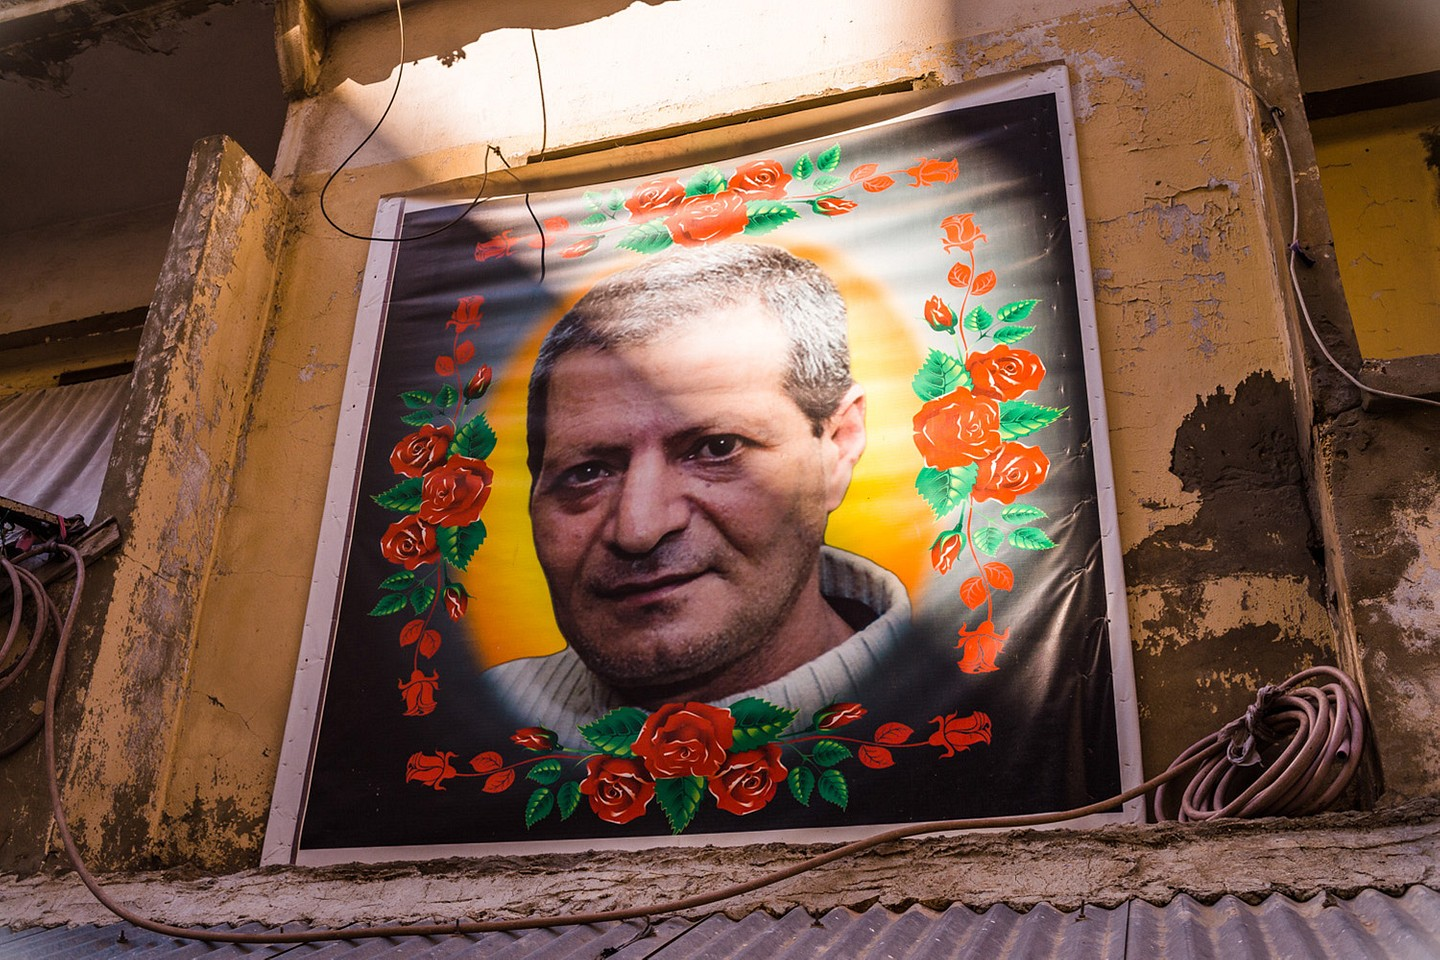 The portrait of Mahmud Hussein Hassan, a Jabal Mohsen resident, decorates the entrance of a residential building. Mr. Hassan died when he tried to prevent one of two suicide bombers from detonating their explosives. The double suicide bombing targeted a Jabal Mohsen coffee house and killed nine people. It was carried out on January 9, 2015, by two Lebanese men associated with the Al-Nusra Front, a Sunni radical group.